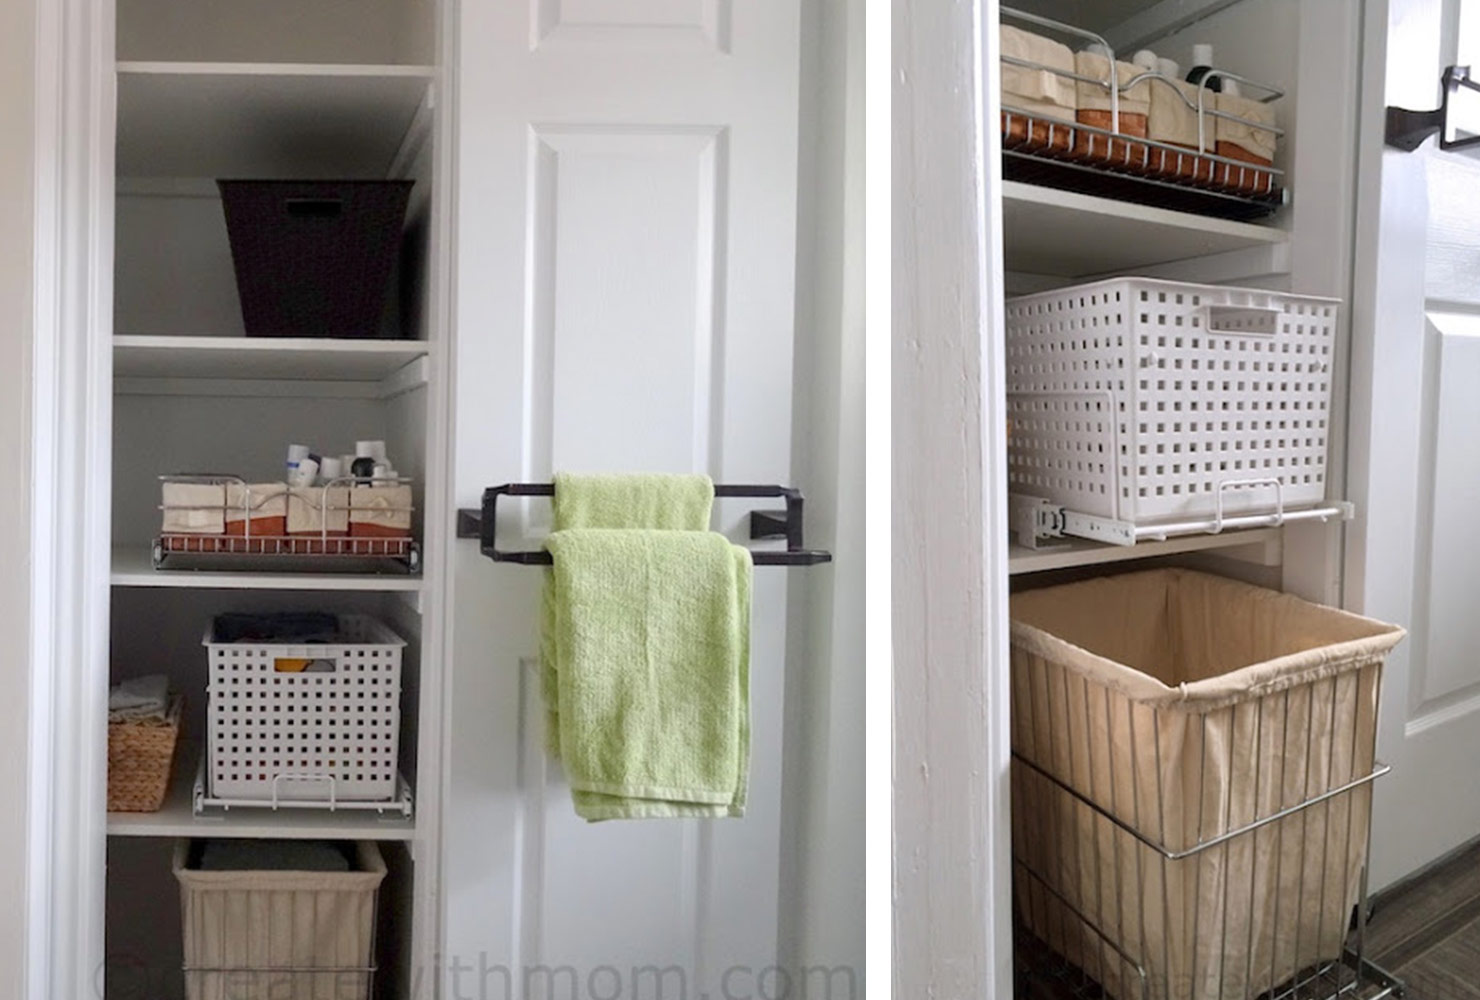 decorate small bathroom cupboard storage baskets